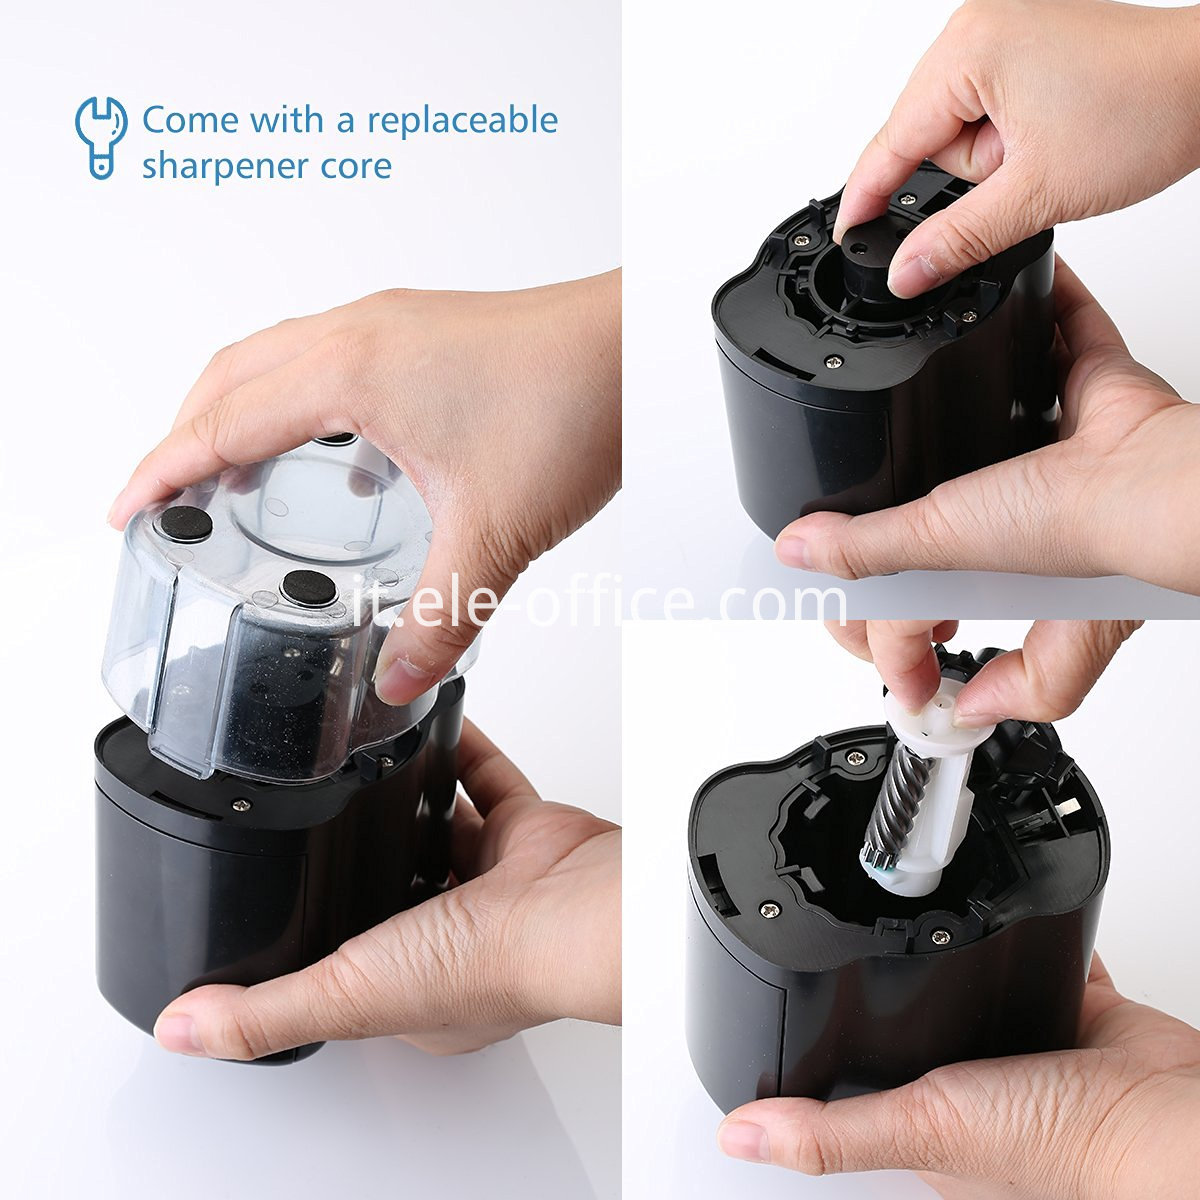 ELECTRIC PENCIL SHARPENER AMAZON BEST SELLER